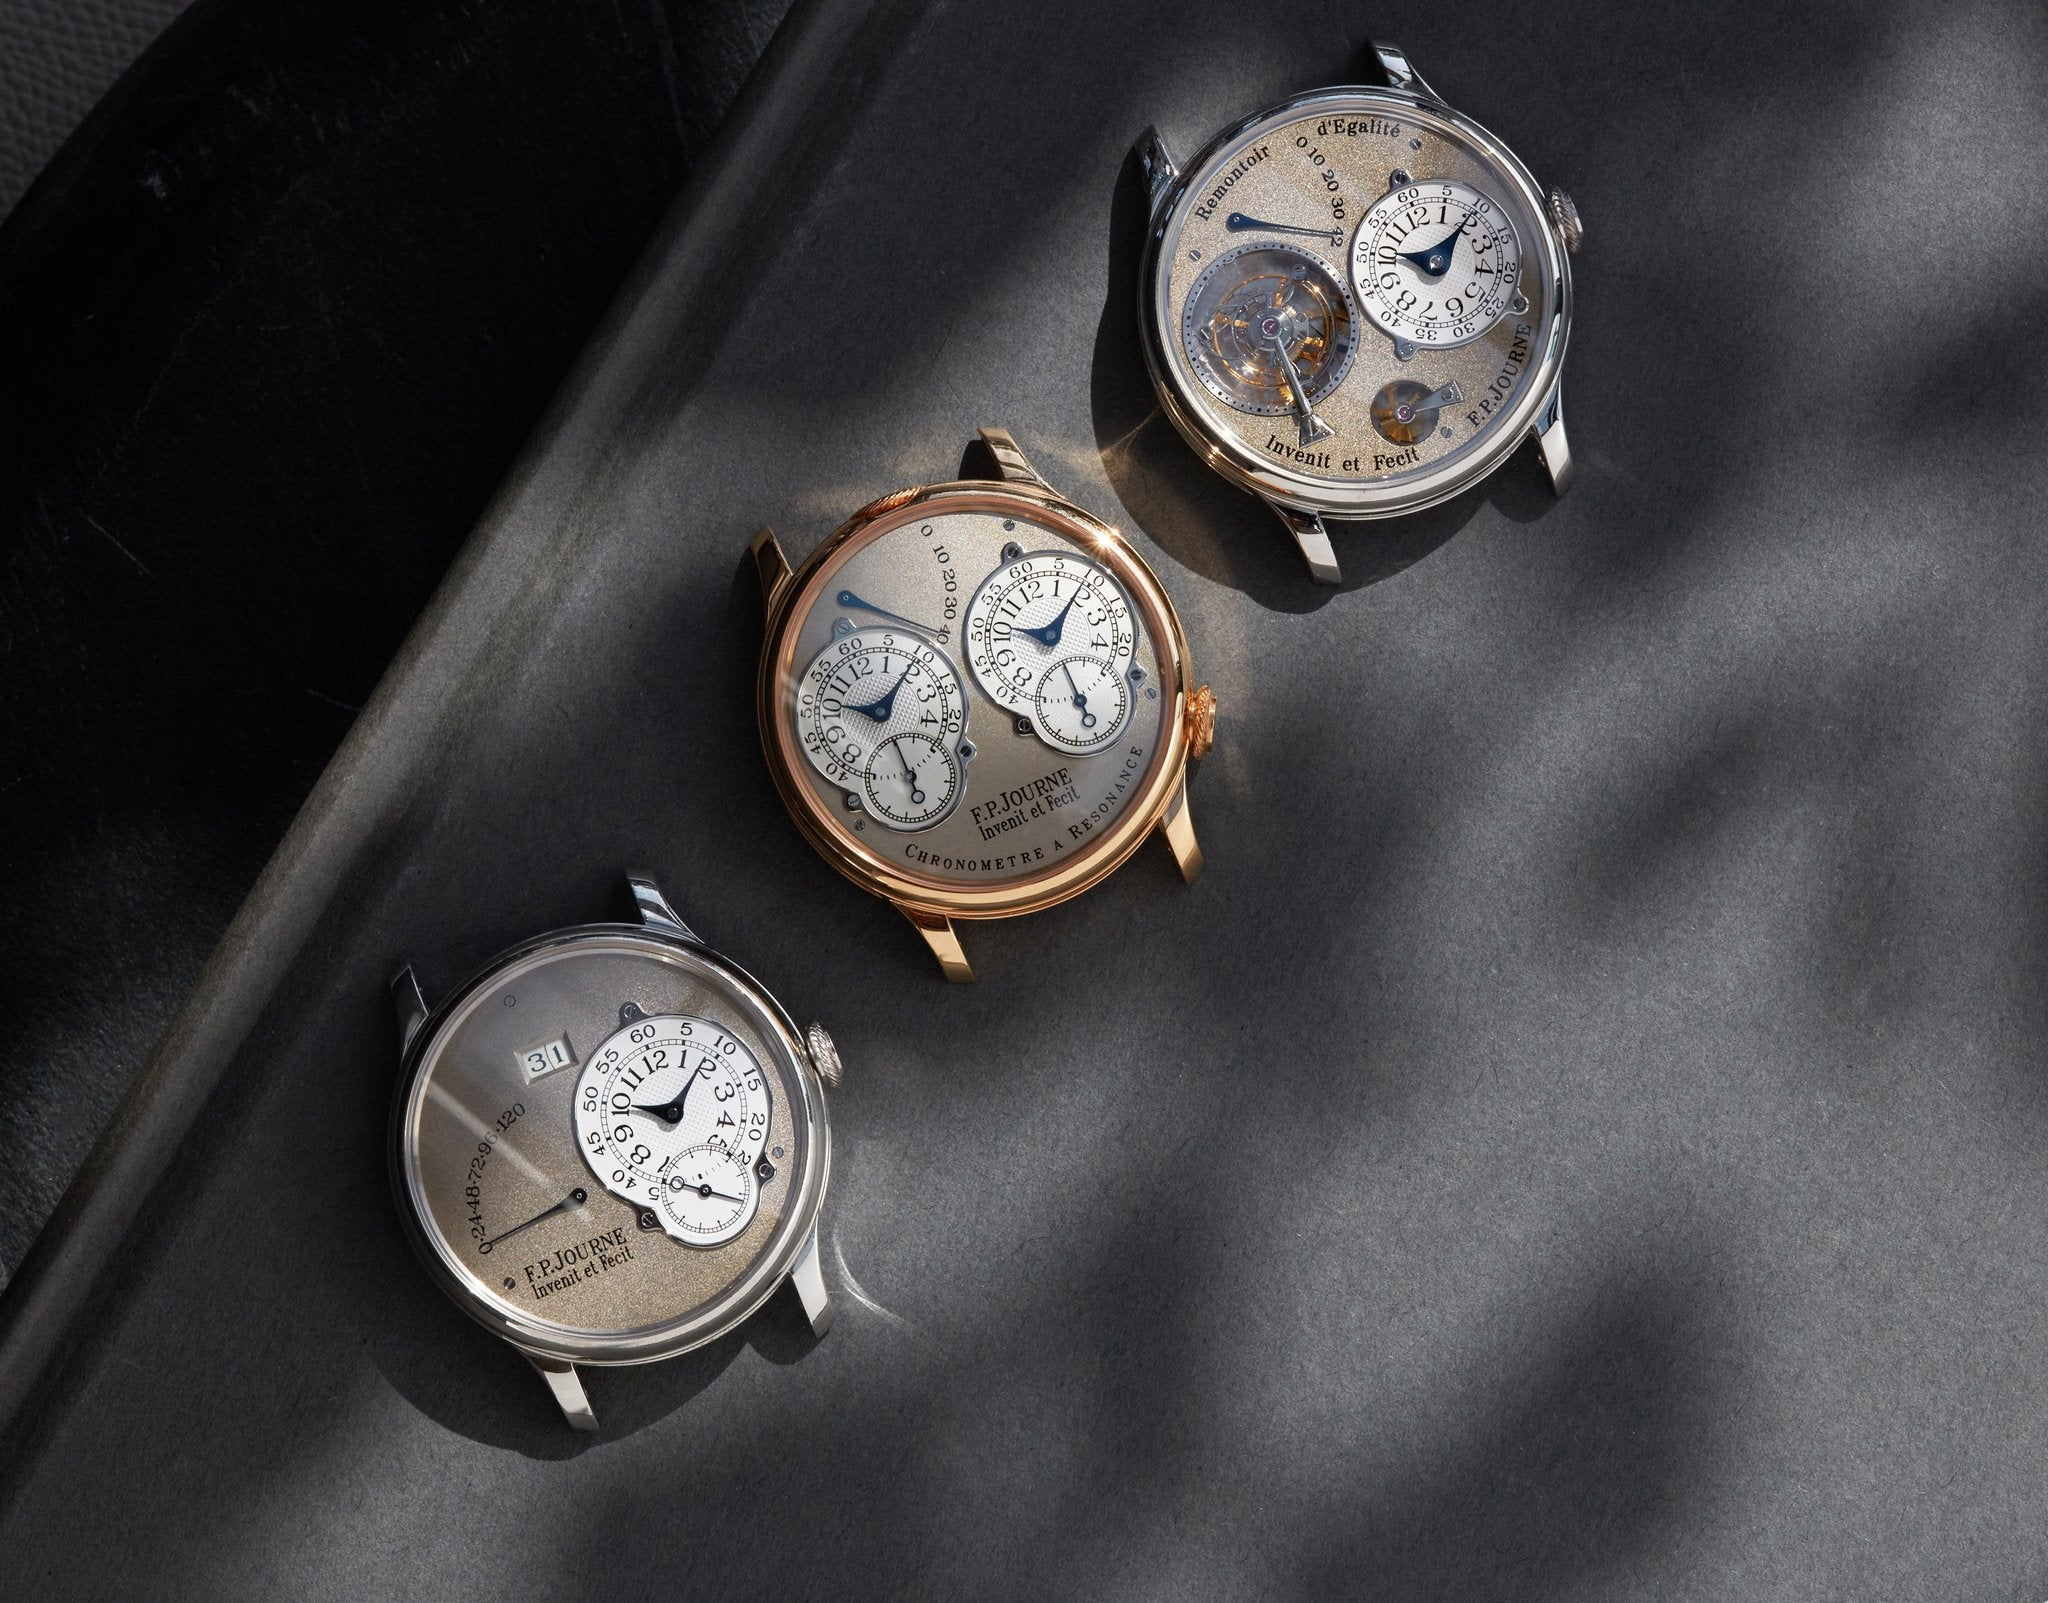 François-Paul Journe three core models in The Rise of Neo-Vintage Watches for A Collected Man London